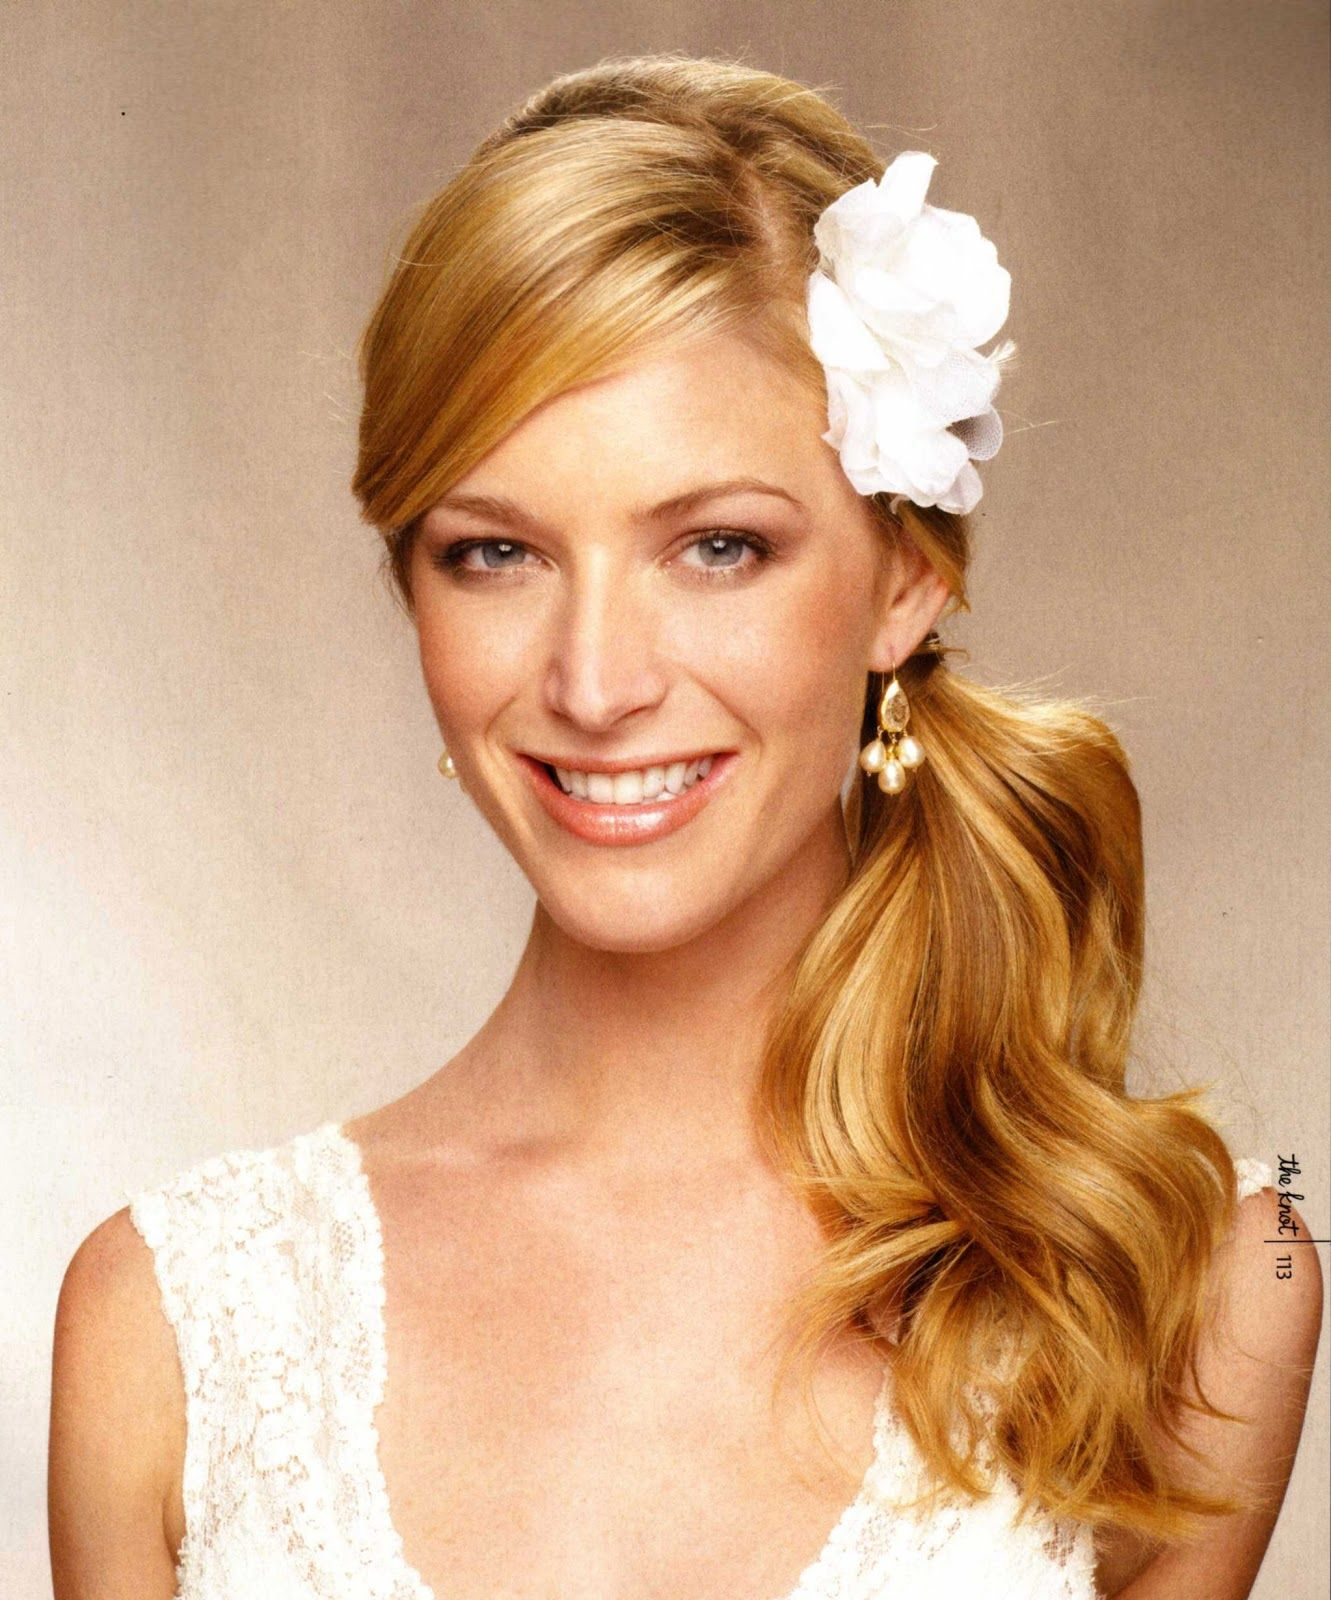 Enjoyable Bridesmaid Hairstyles Hairstyles And Bridesmaid On Pinterest Hairstyles For Women Draintrainus